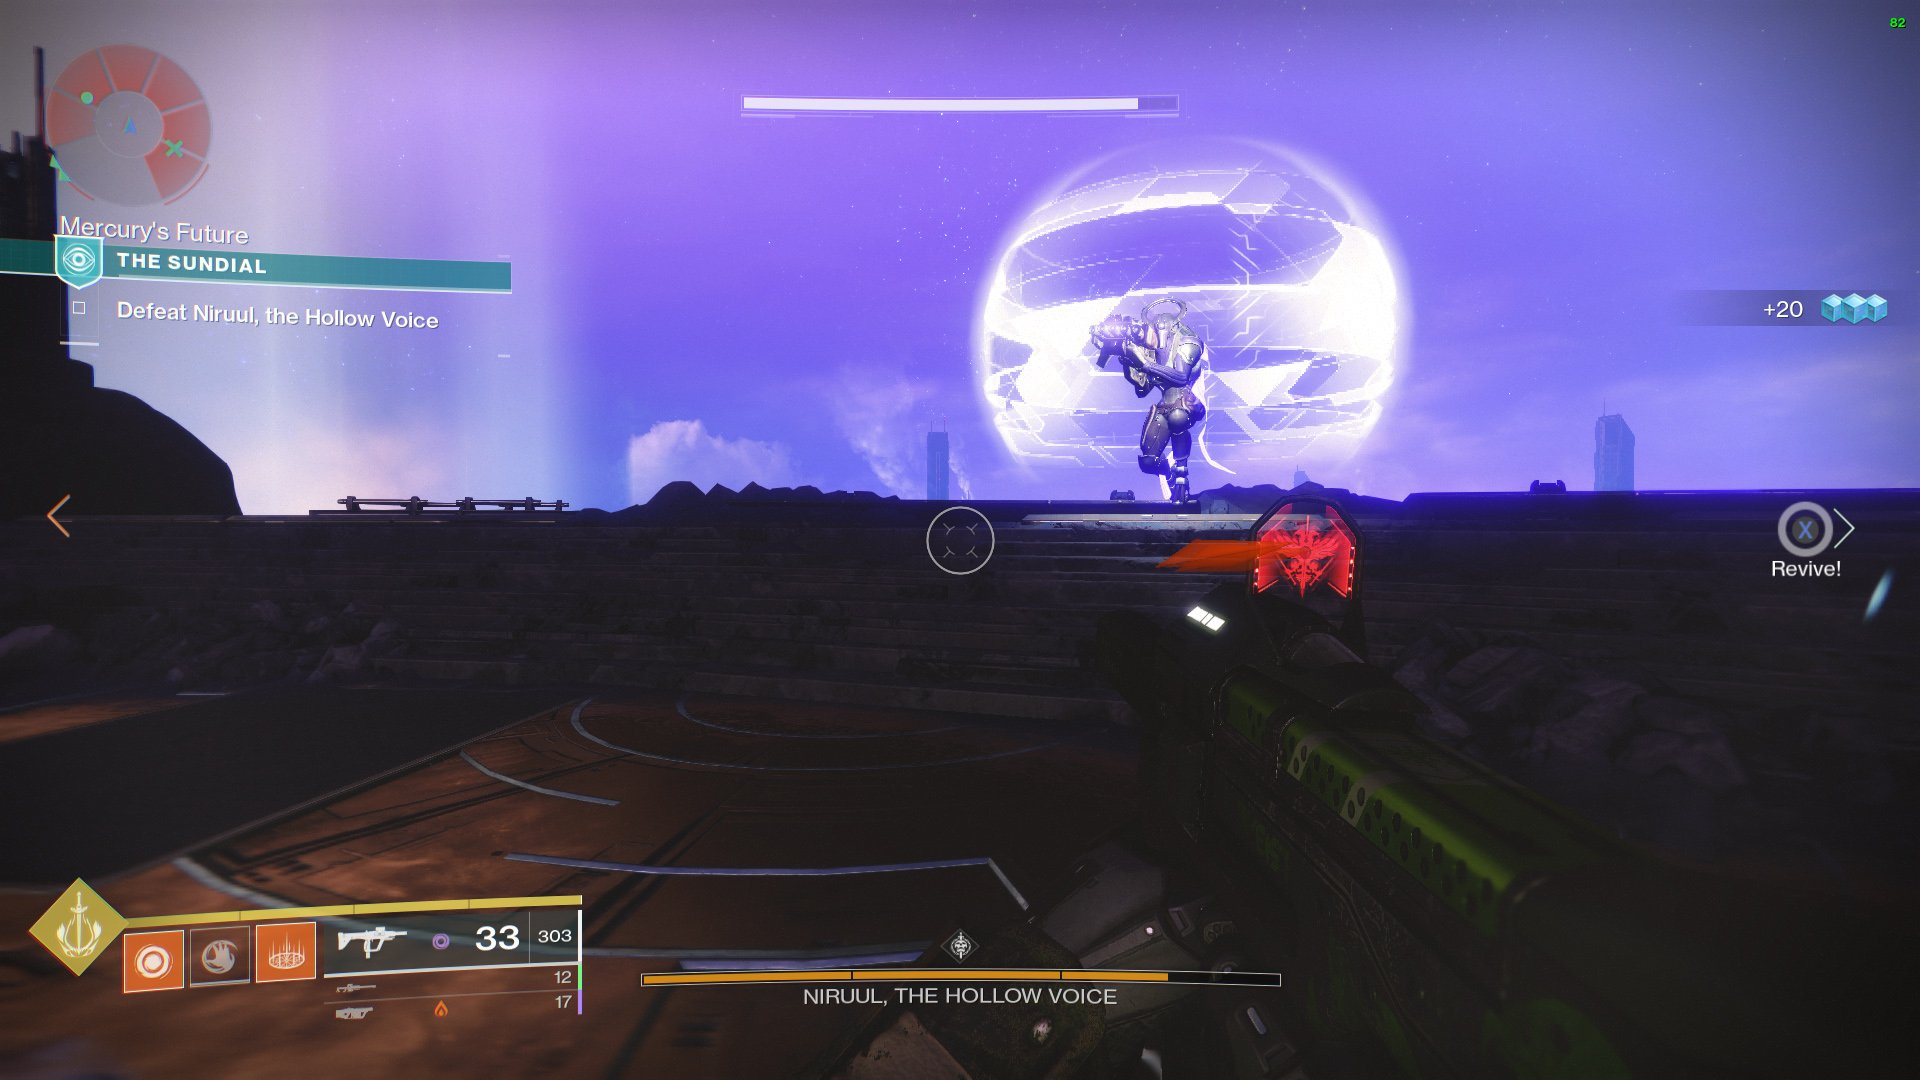 destiny 2 the sundial season of dawn